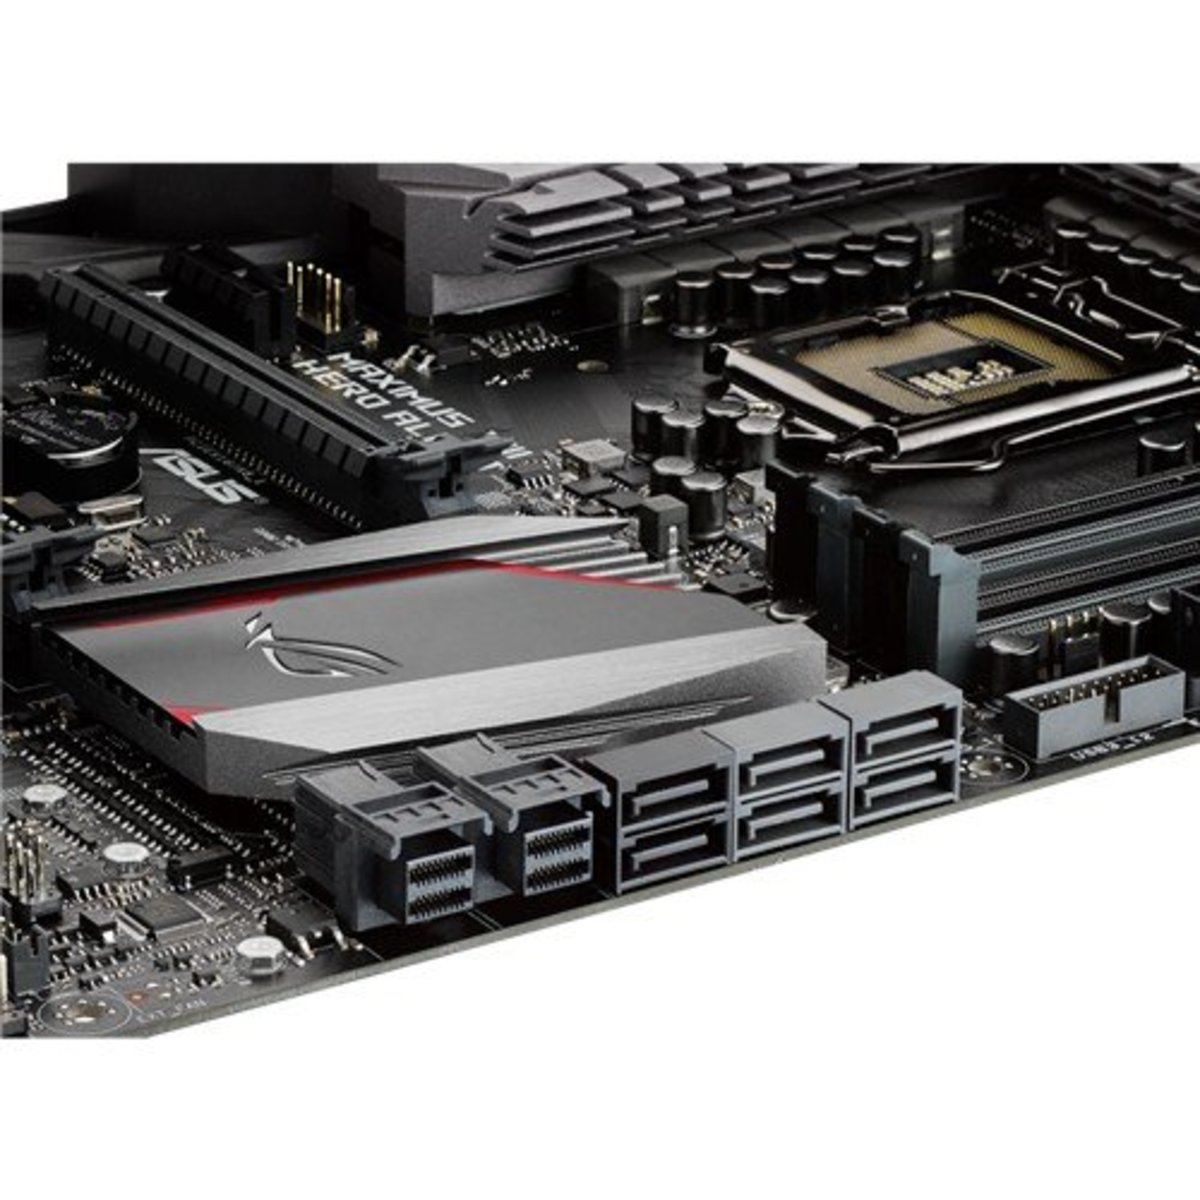 Best Z170 Skylake 1151 PC Gaming Motherboards